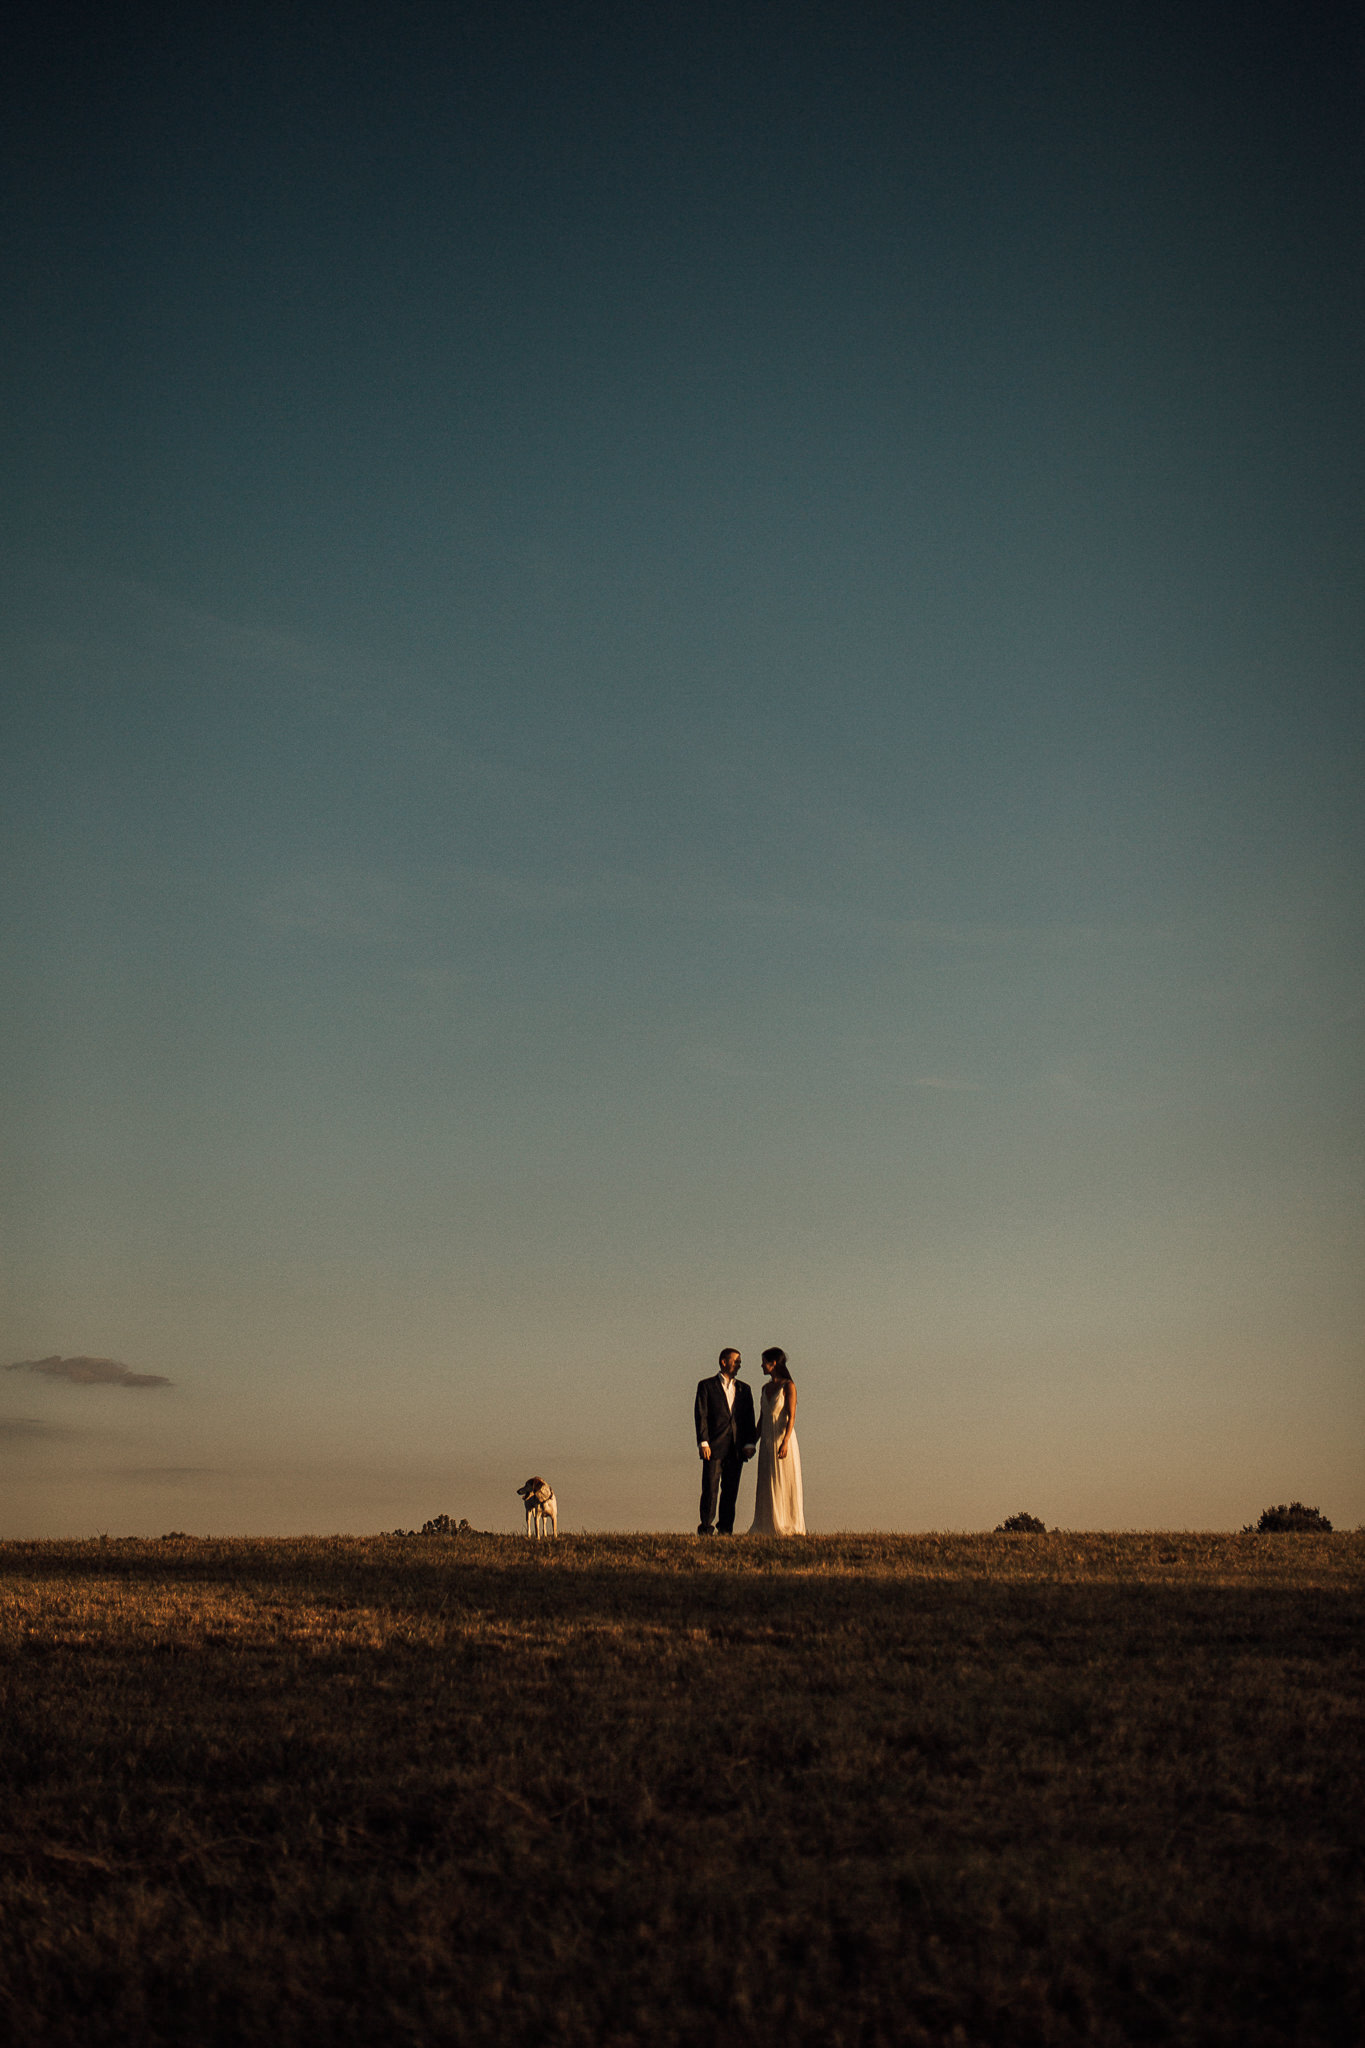 memphis-wedding-photographers-the-warmth-around-you-cassie-cook-photography-3.jpg